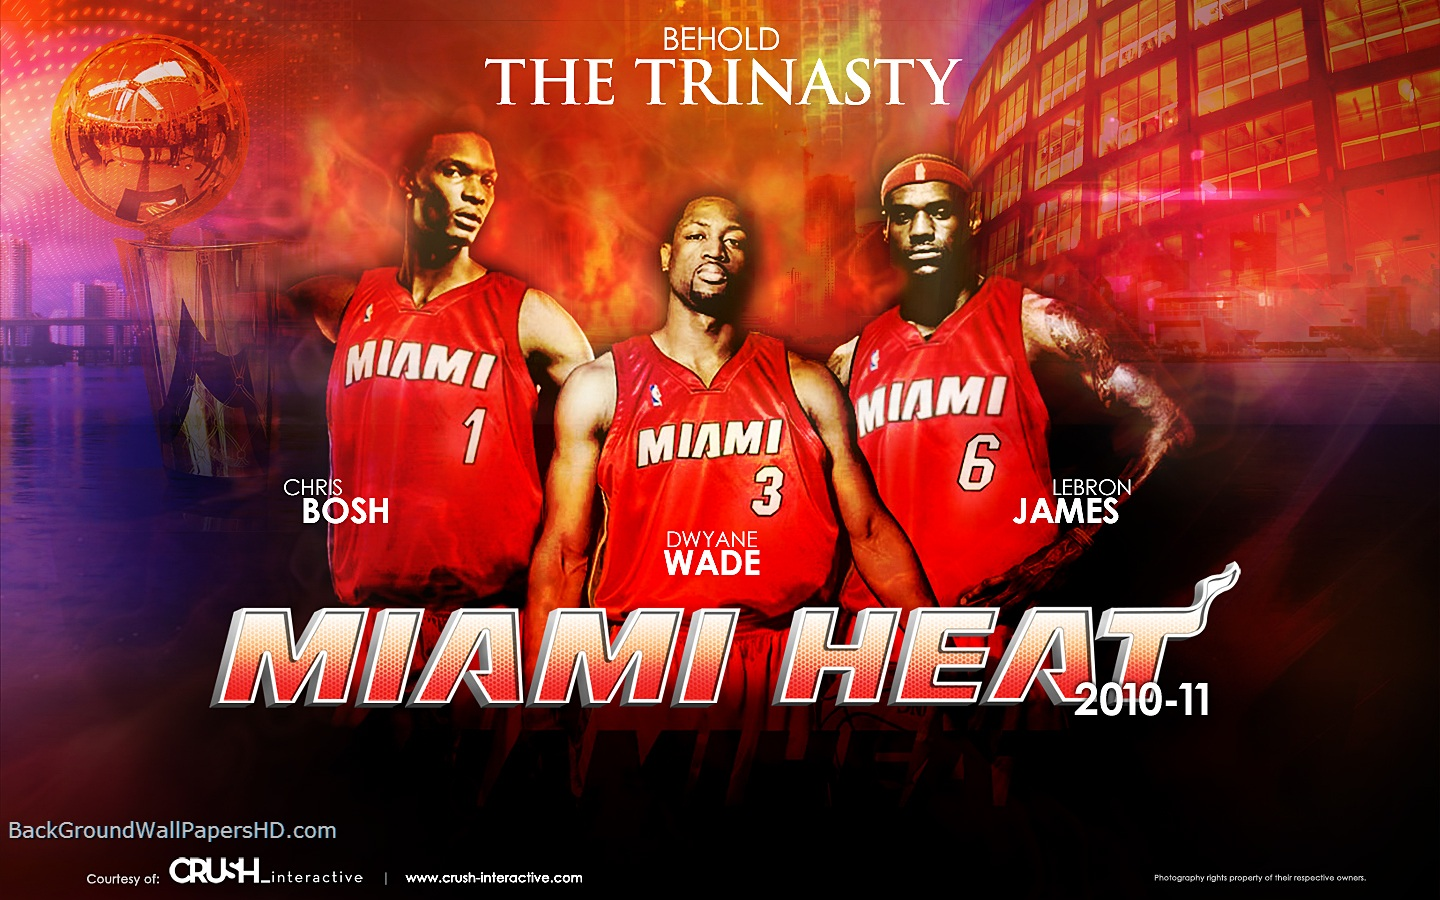 Three Miami Heat Player Wallpaper HD HD Wallpapers HD Backgrounds 1440x900